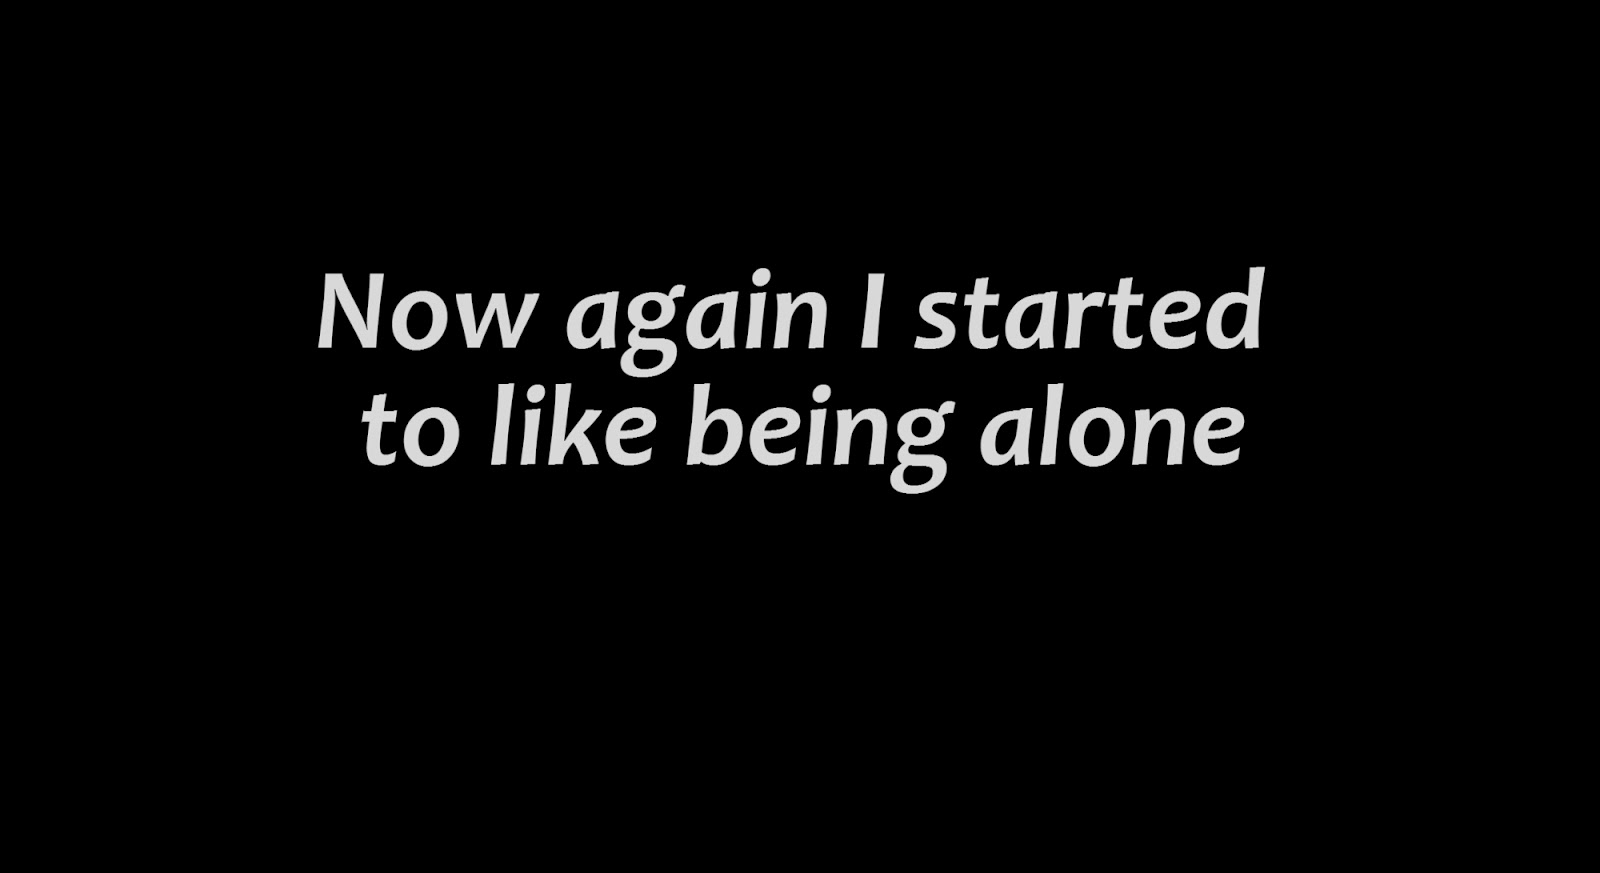 Now again I started to like being alone